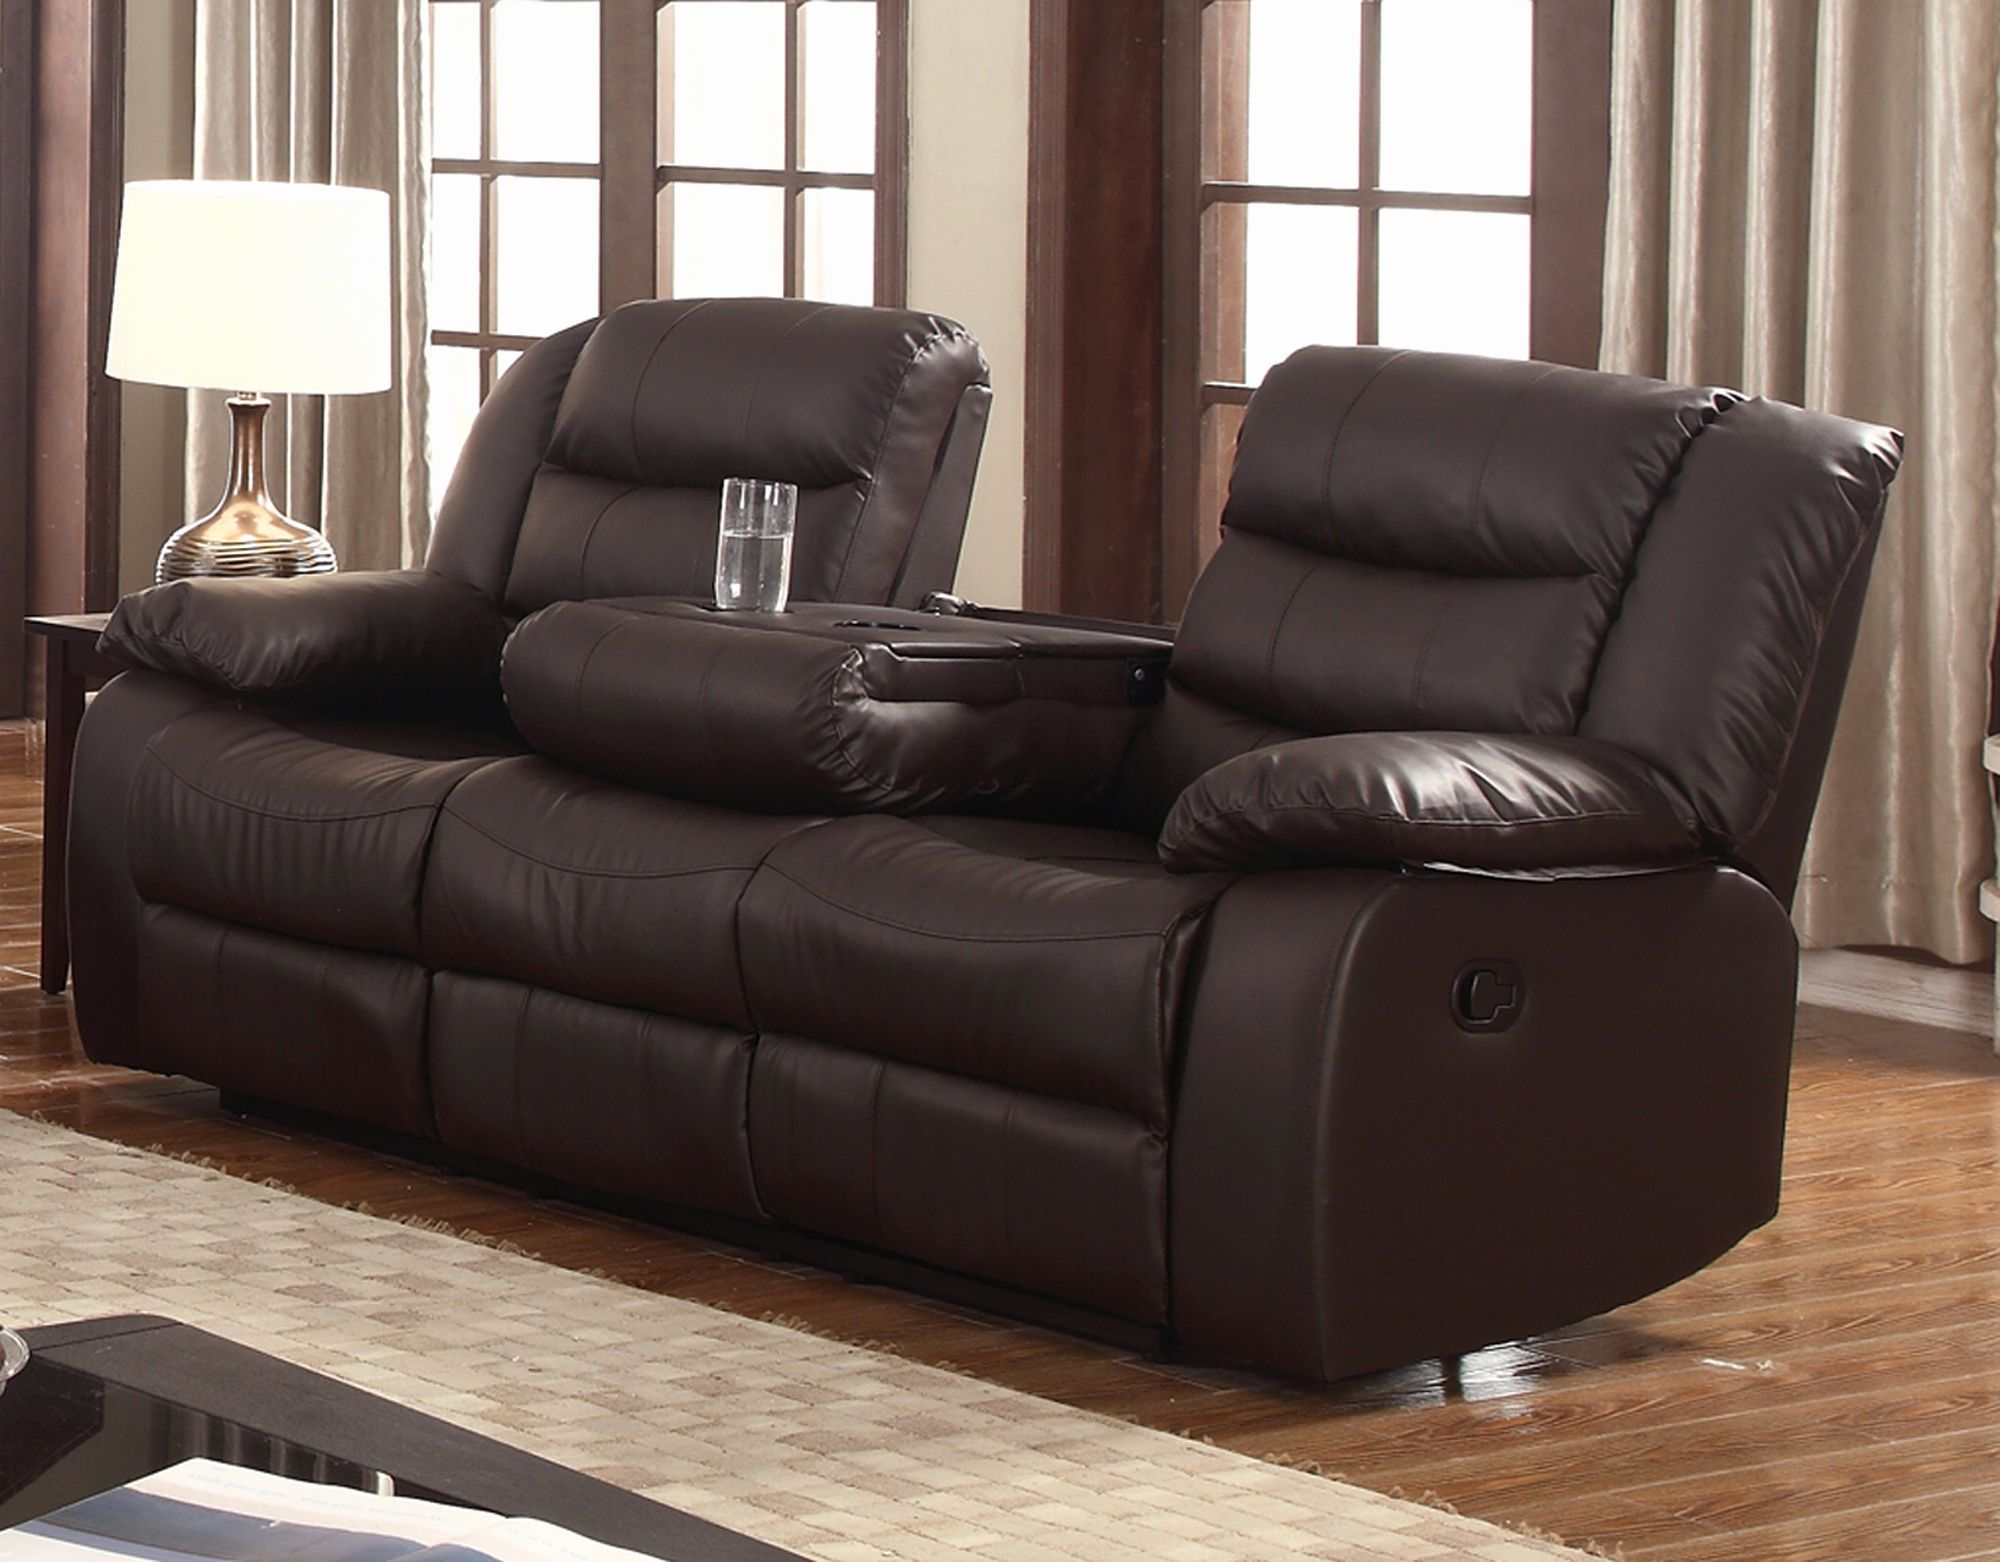 Beautiful Modern Leather Recliner Sofa Pictures Modern Leather Recliner Sofa  Beautiful Layla Dark Brown Faux Leather